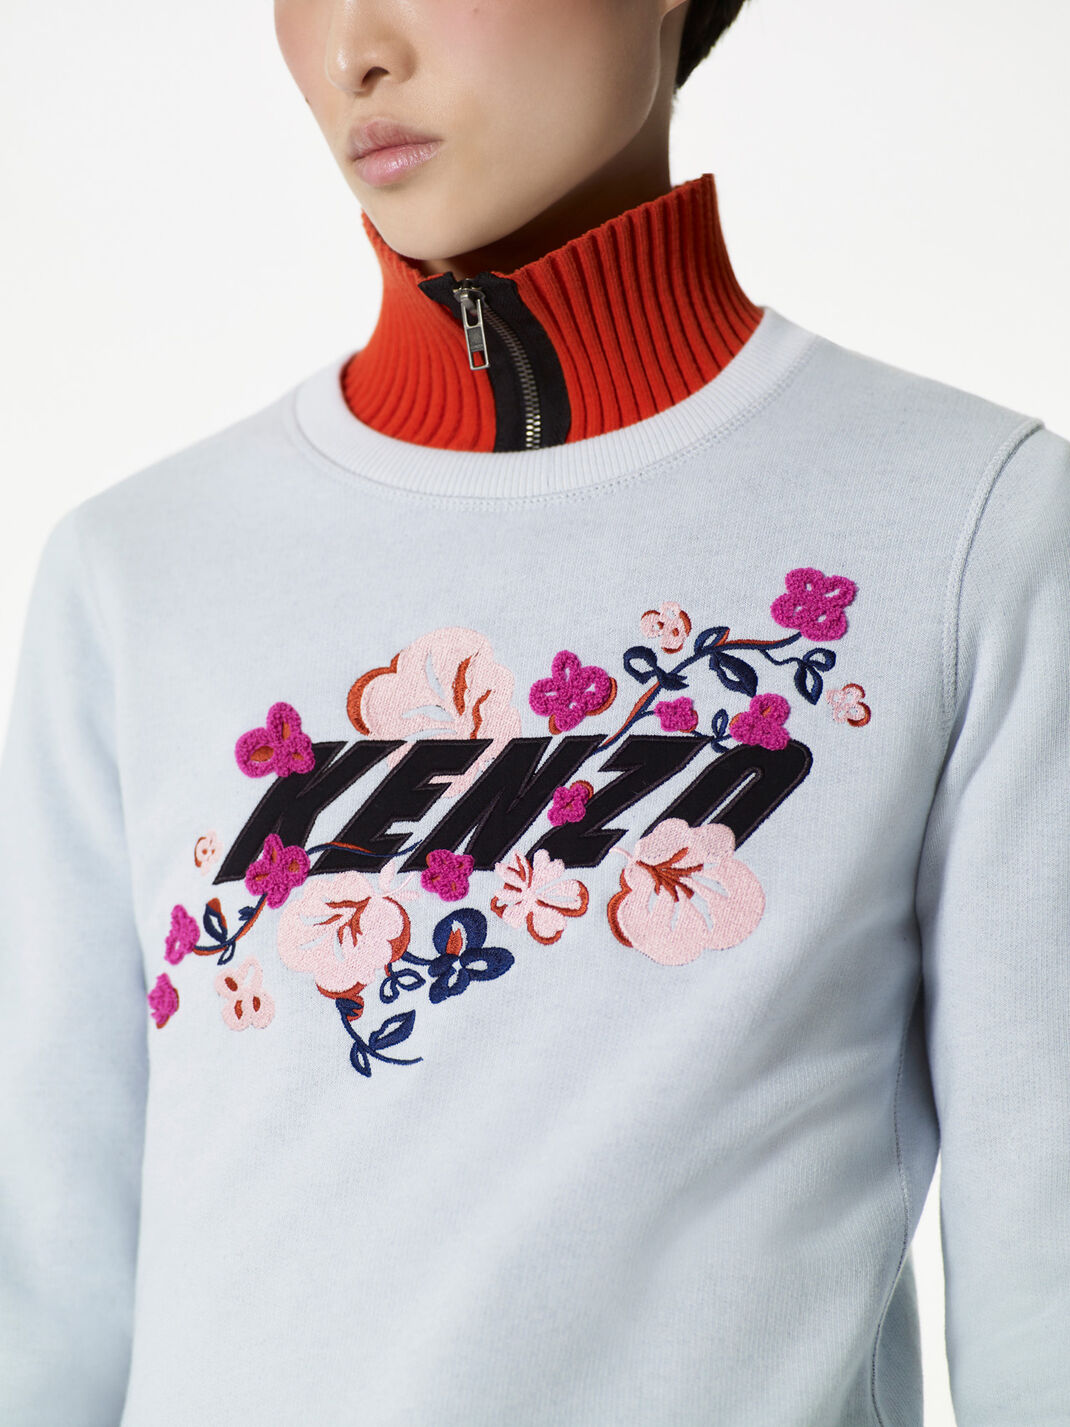 GLACIER KENZO x Floral Leaf' Sweatshirt  for women